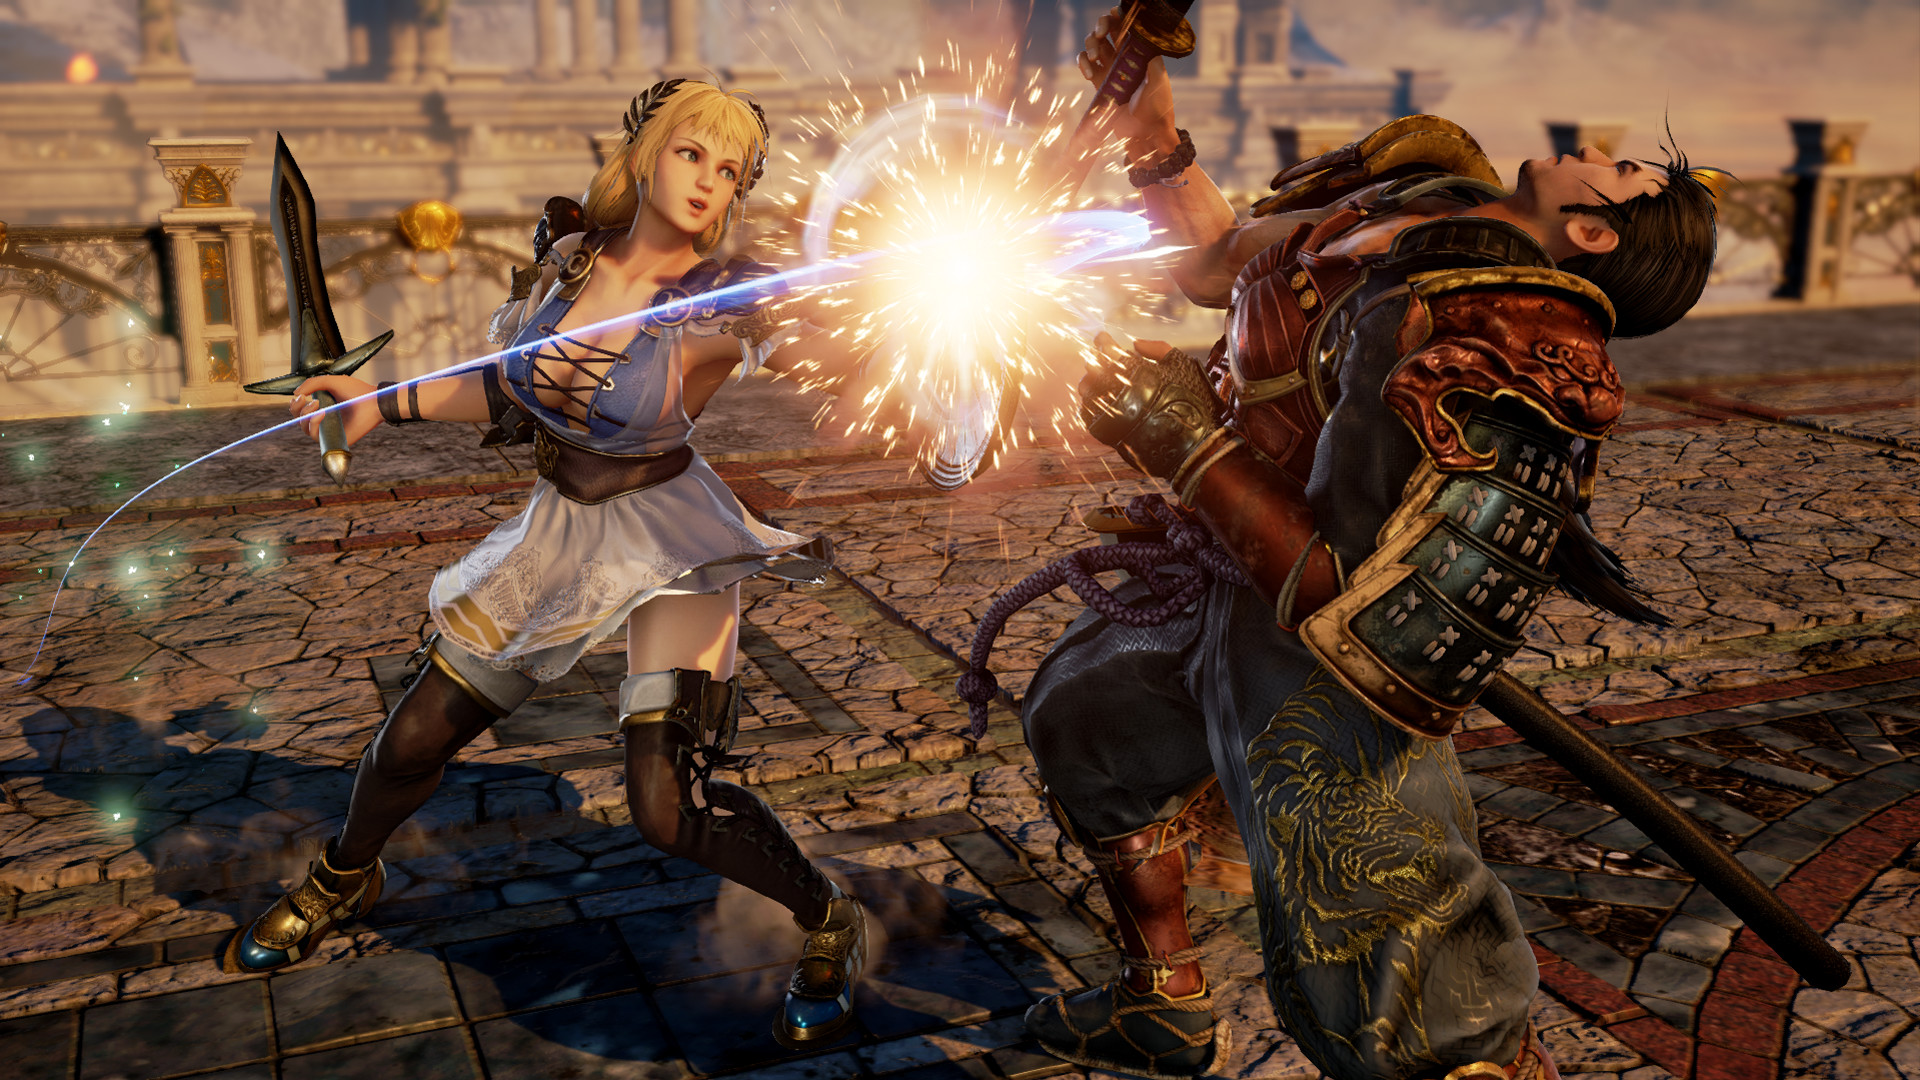 Play Soulcalibur VI For Free This Weekend